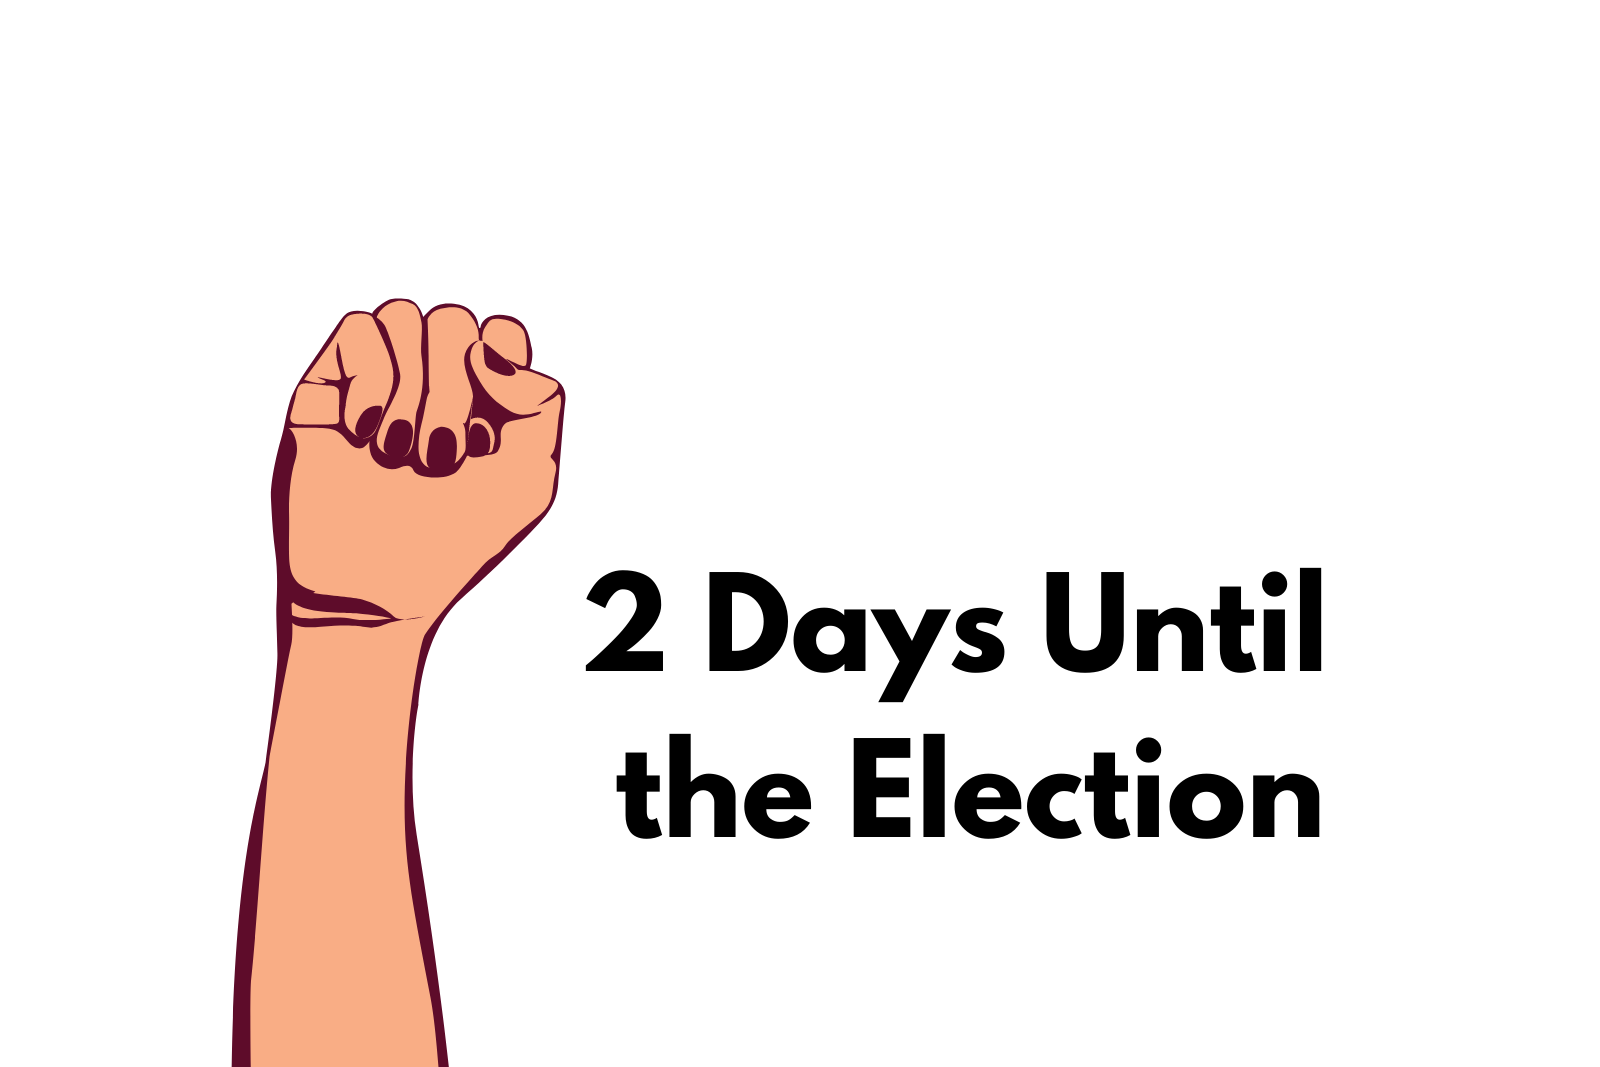 Bonus: 2 Days Until the Election